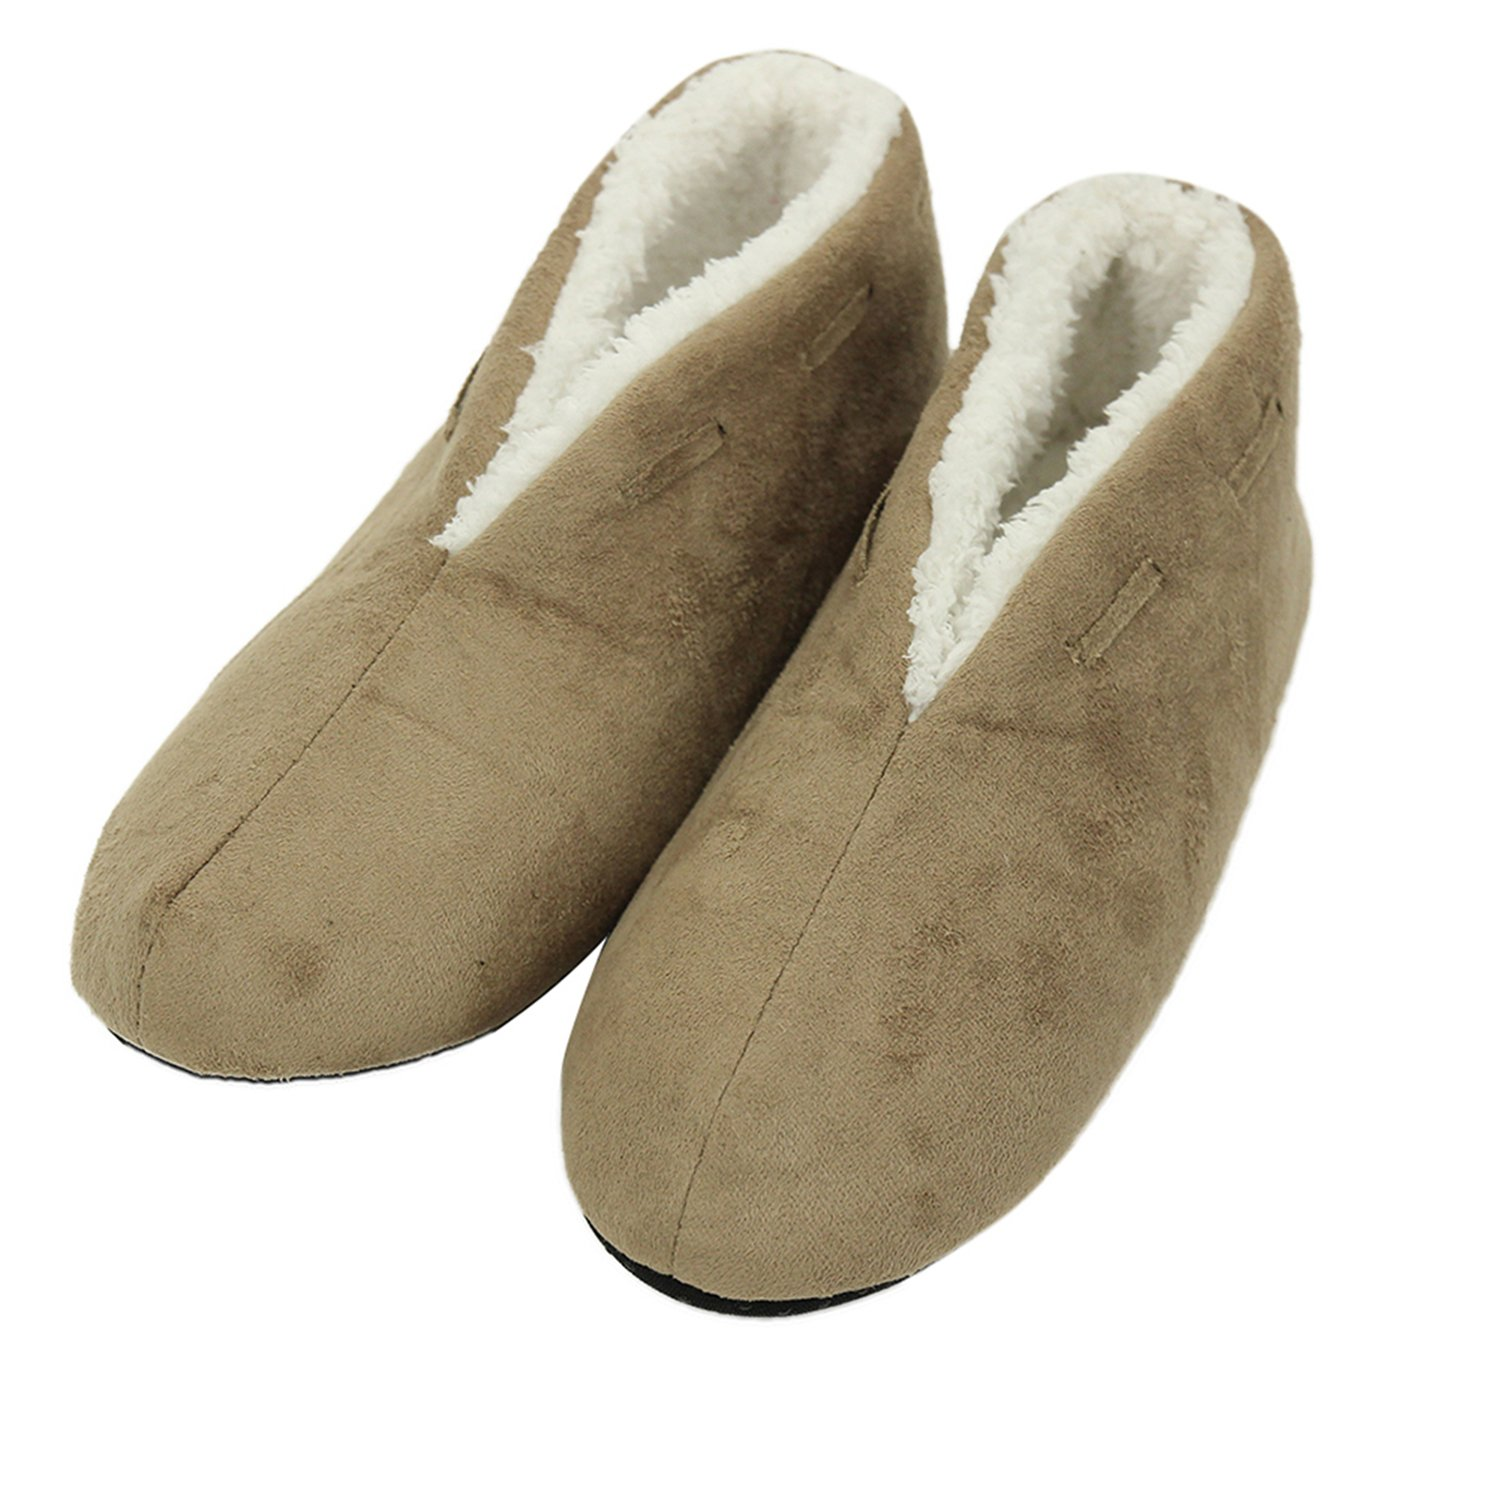 Forfoot Woman's Girl's Winter Warm Cozy Fashion Indoor Bedroom House Shoes Midcalf Boot Slippers Beige US Womens Slipper Size 9-10